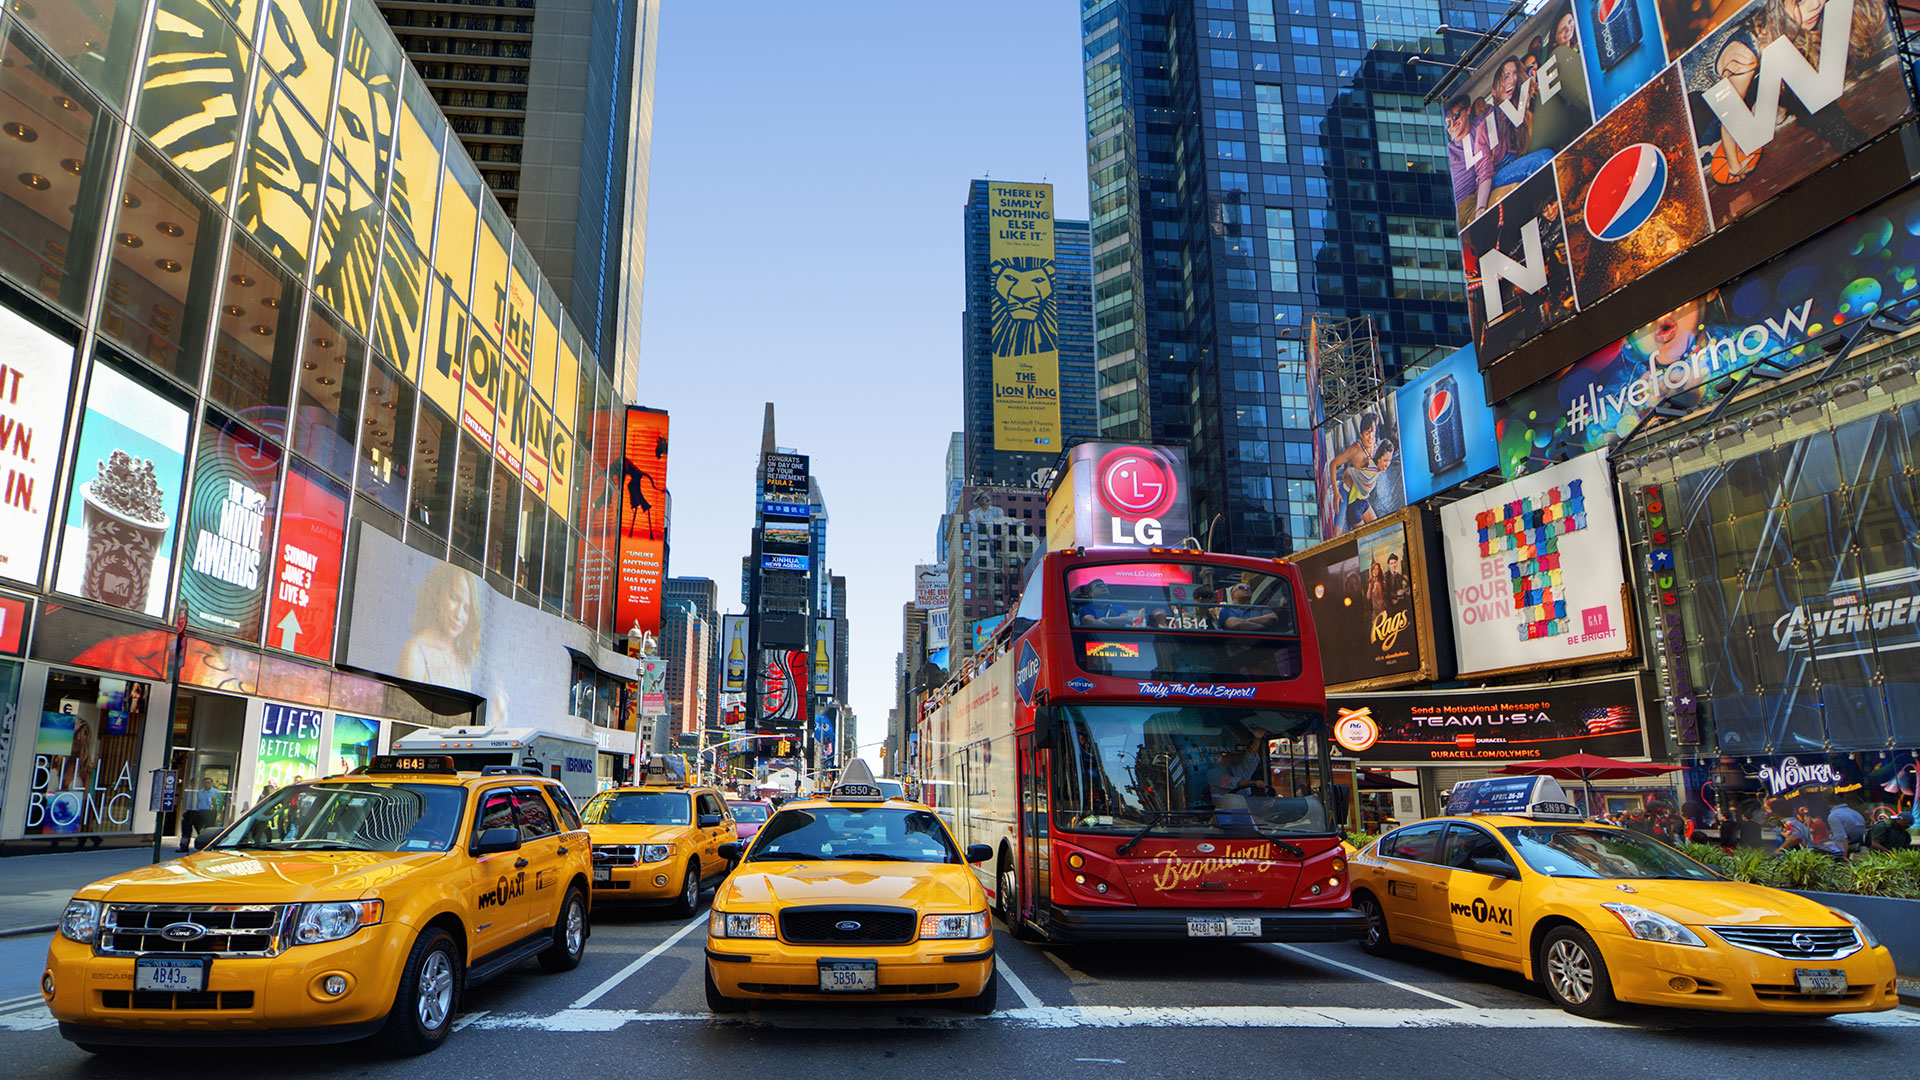 Hotels In Nyc With Parking Included